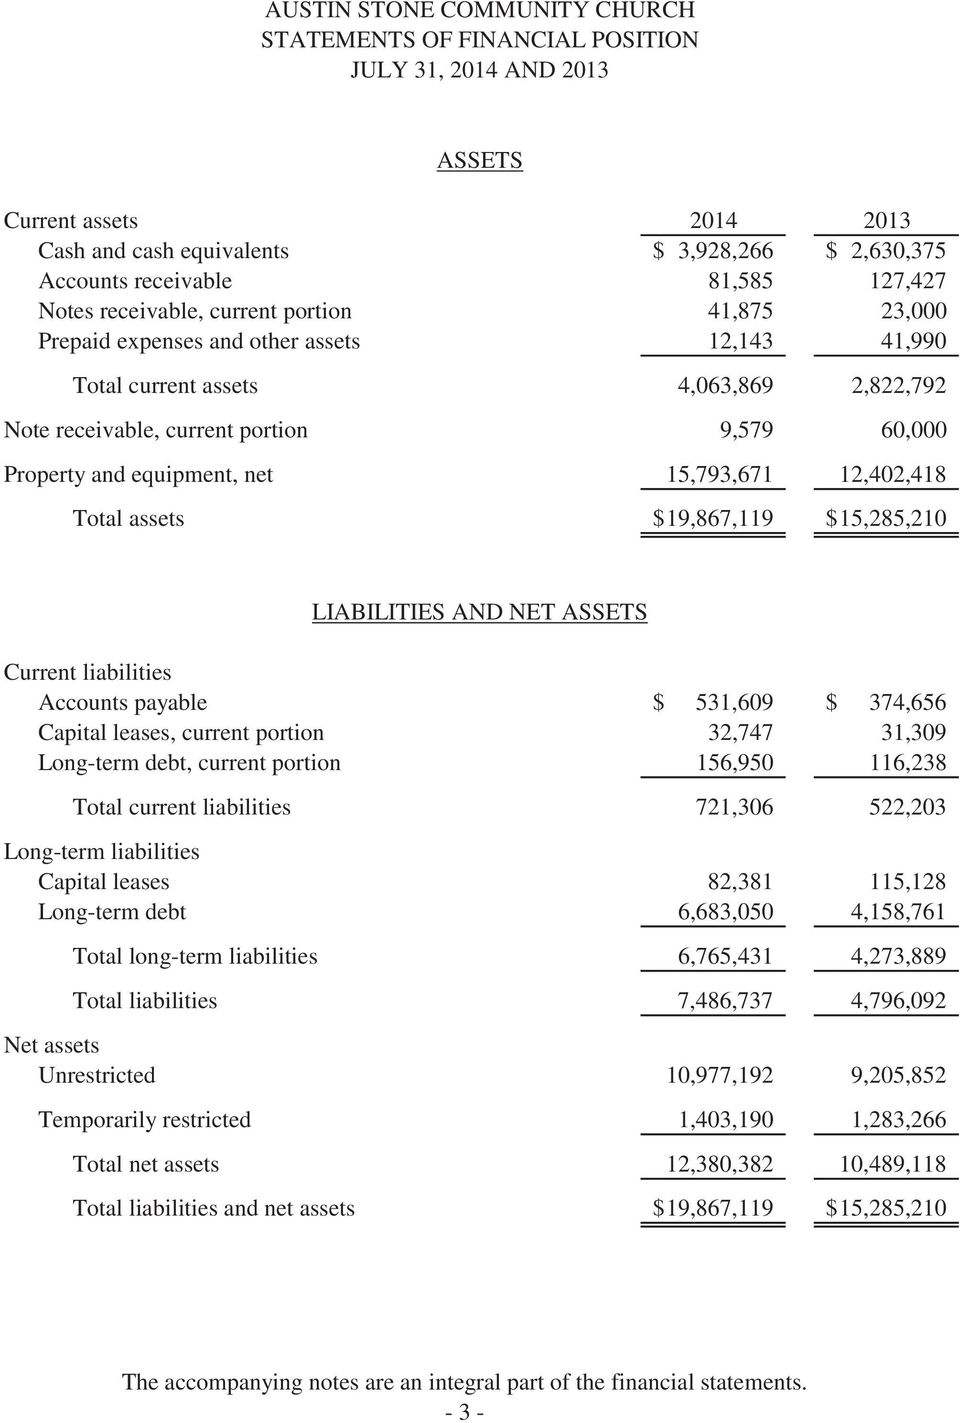 19,867,119 $ 15,285,210 LIABILITIES AND NET ASSETS Current liabilities Accounts payable $ 531,609 $ 374,656 Capital leases, current portion 32,747 31,309 Long-term debt, current portion 156,950